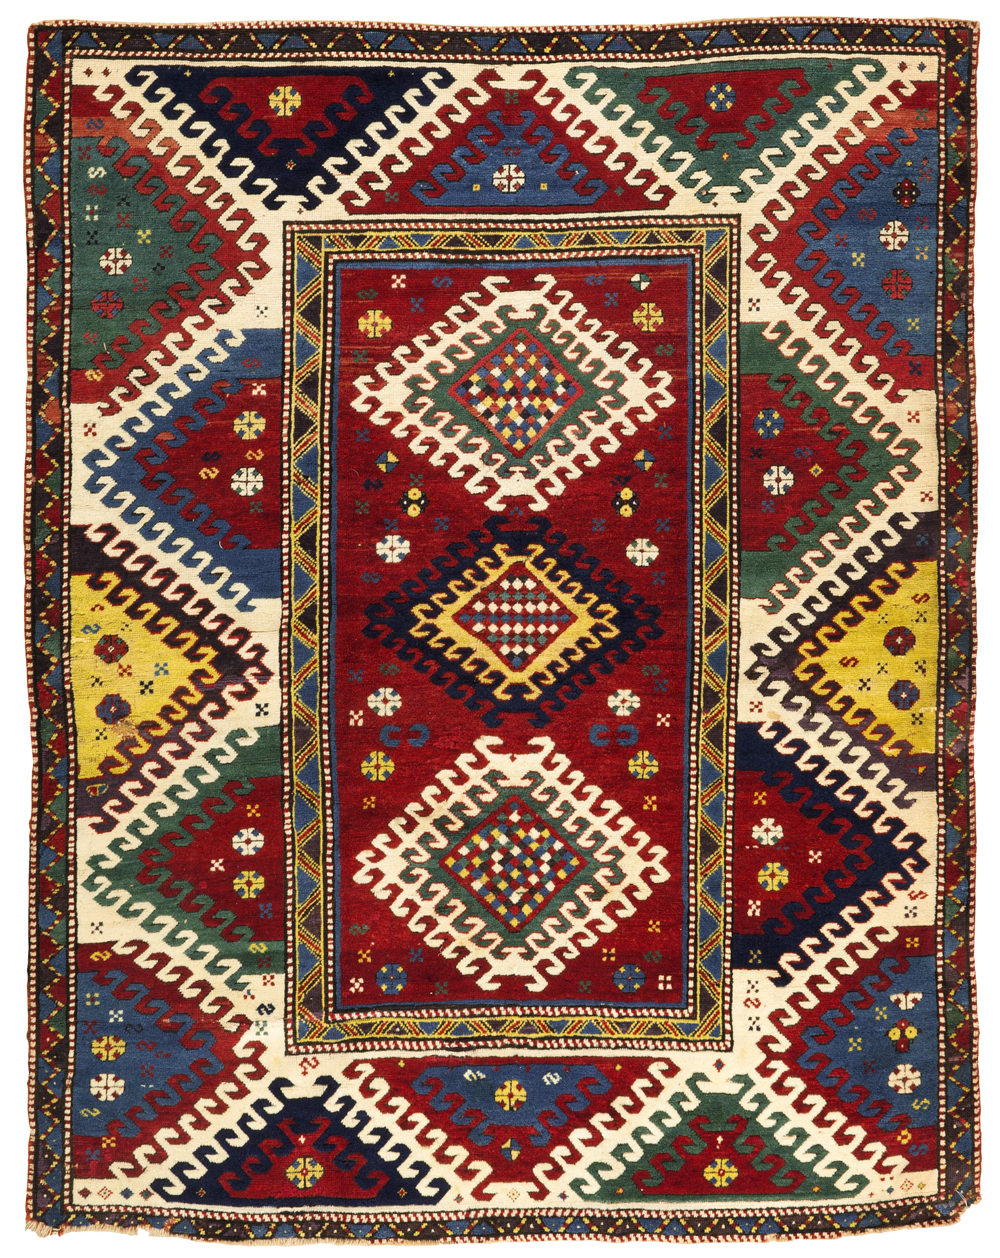 Lot 49, A Bordjalou Kazak rug, West Caucasus, Sotheby's